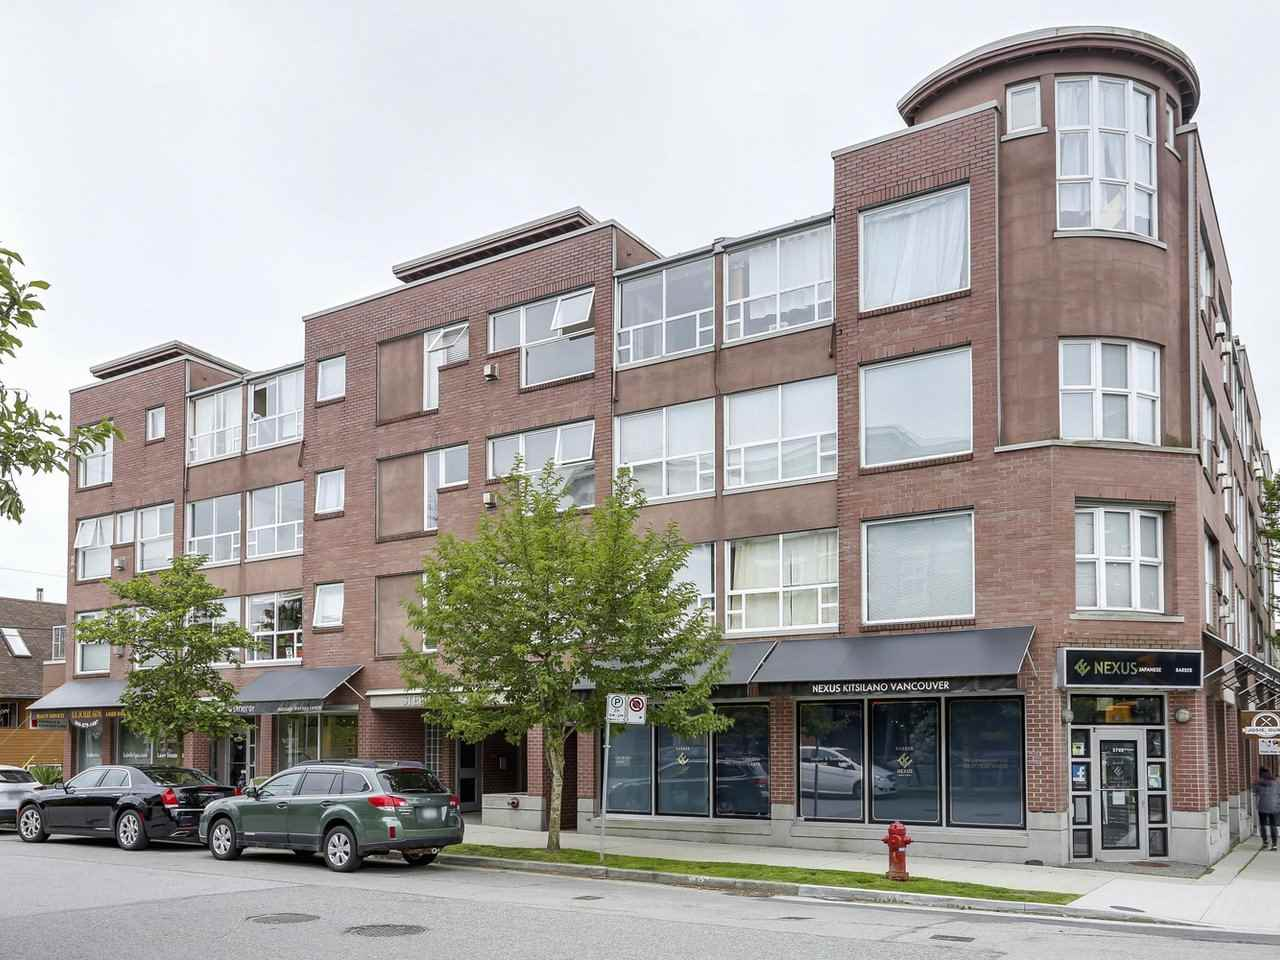 "Photo 1: 406 2025 STEPHENS Street in Vancouver: Kitsilano Condo for sale in ""Stephens Court"" (Vancouver West)  : MLS(r) # R2178000"